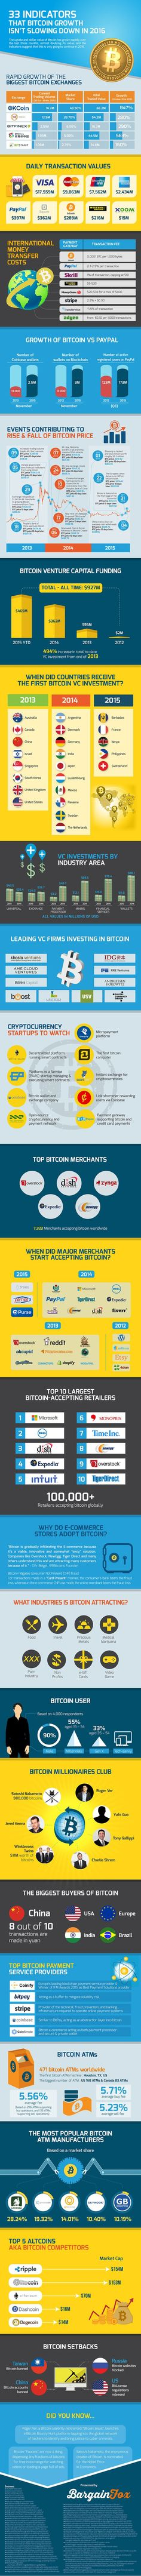 Why Bitcoin Will Continue to Grow in 2016 #infographic #Finance #Bitcoin: